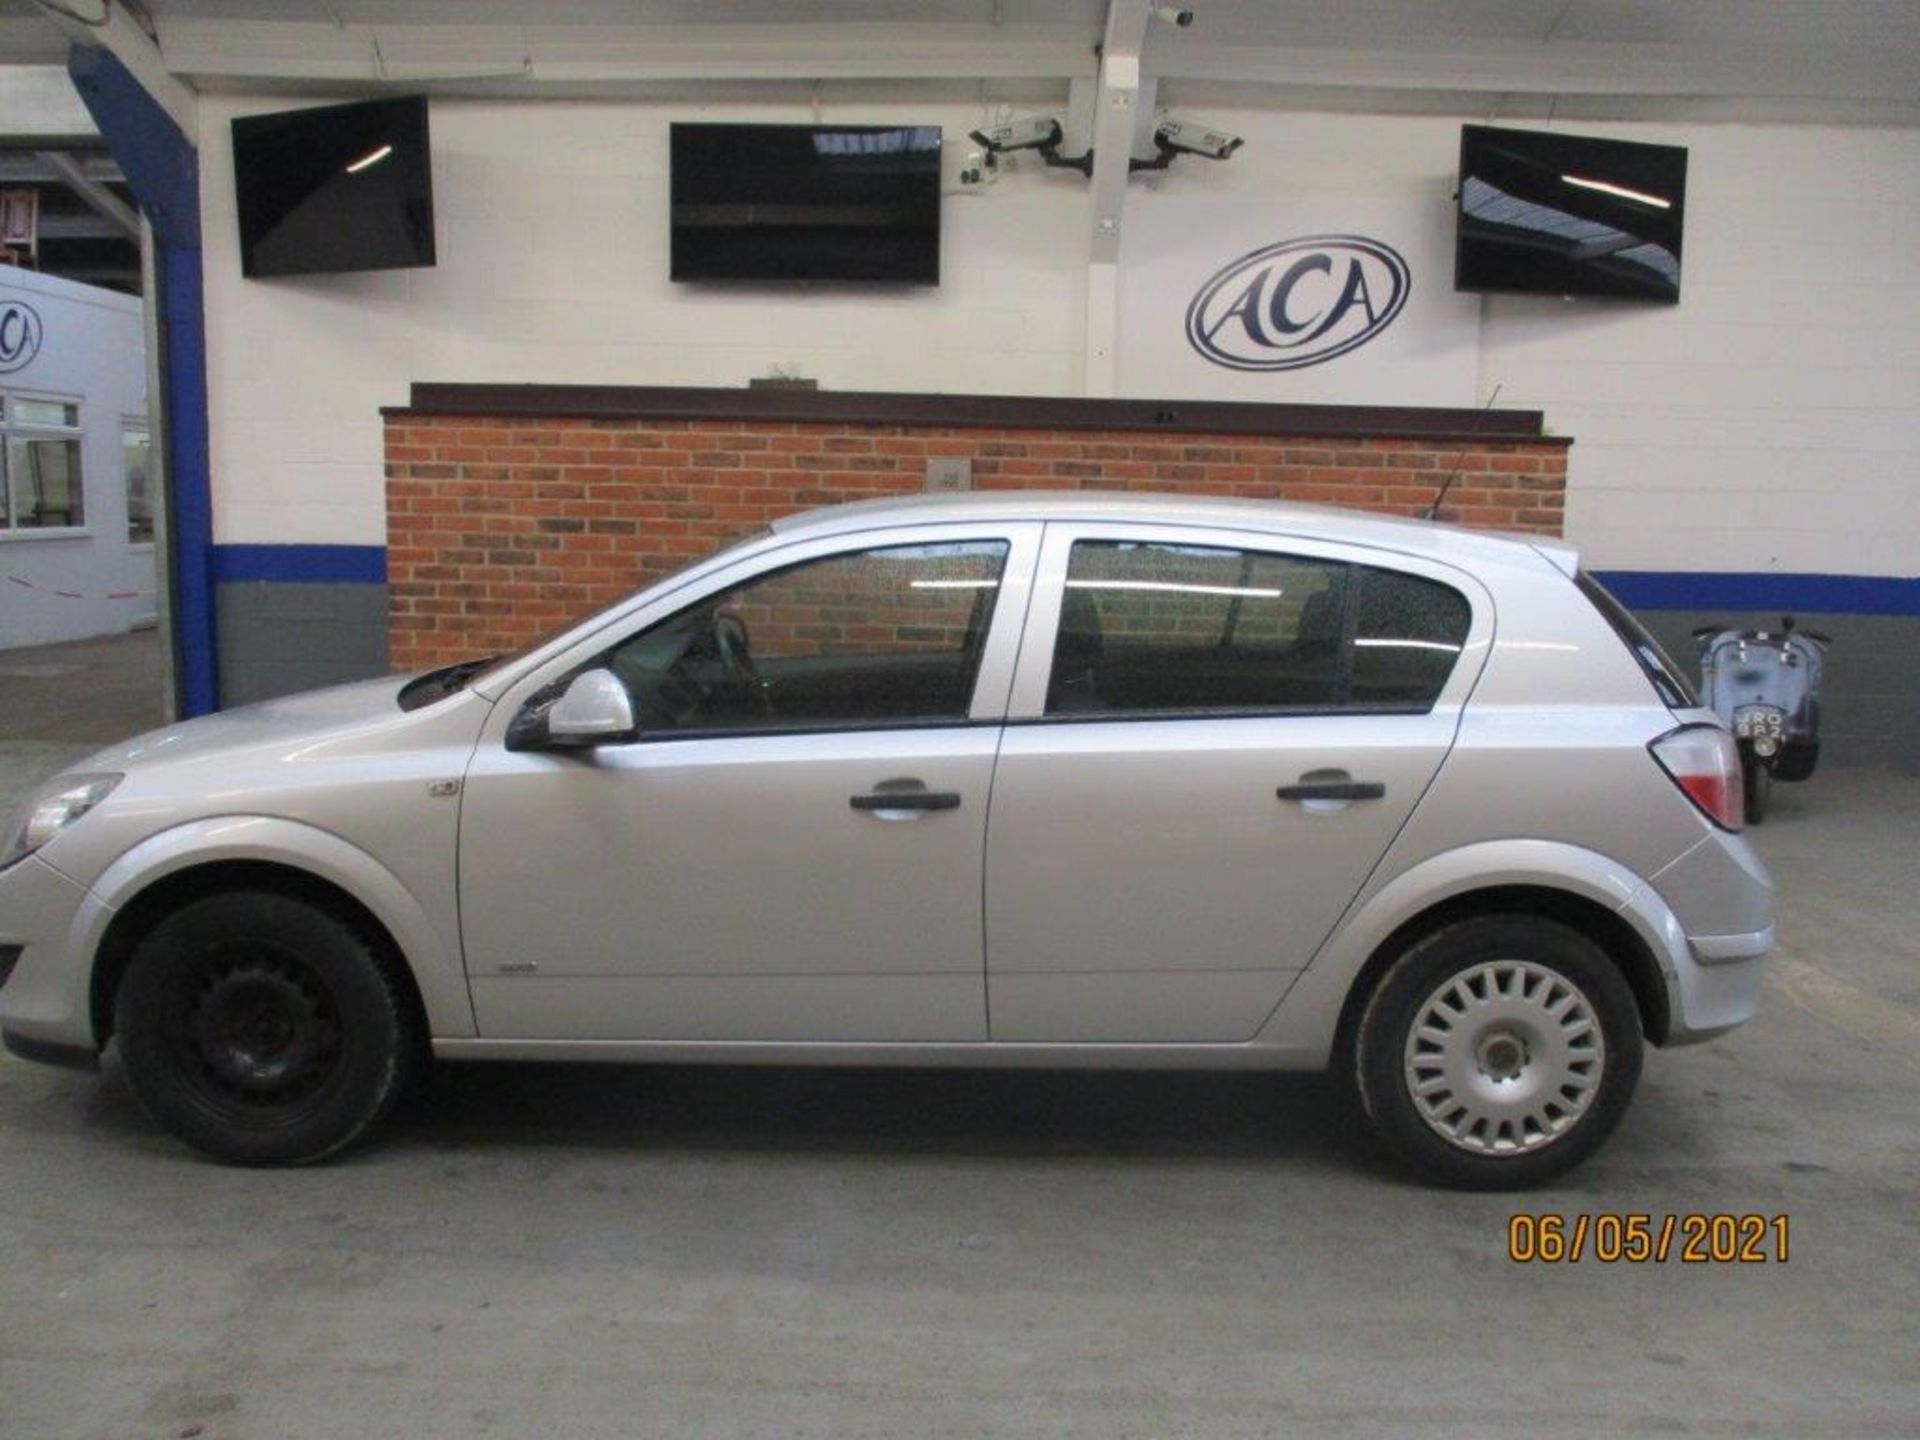 10 59 Vauxhall Astra Life - Image 2 of 14